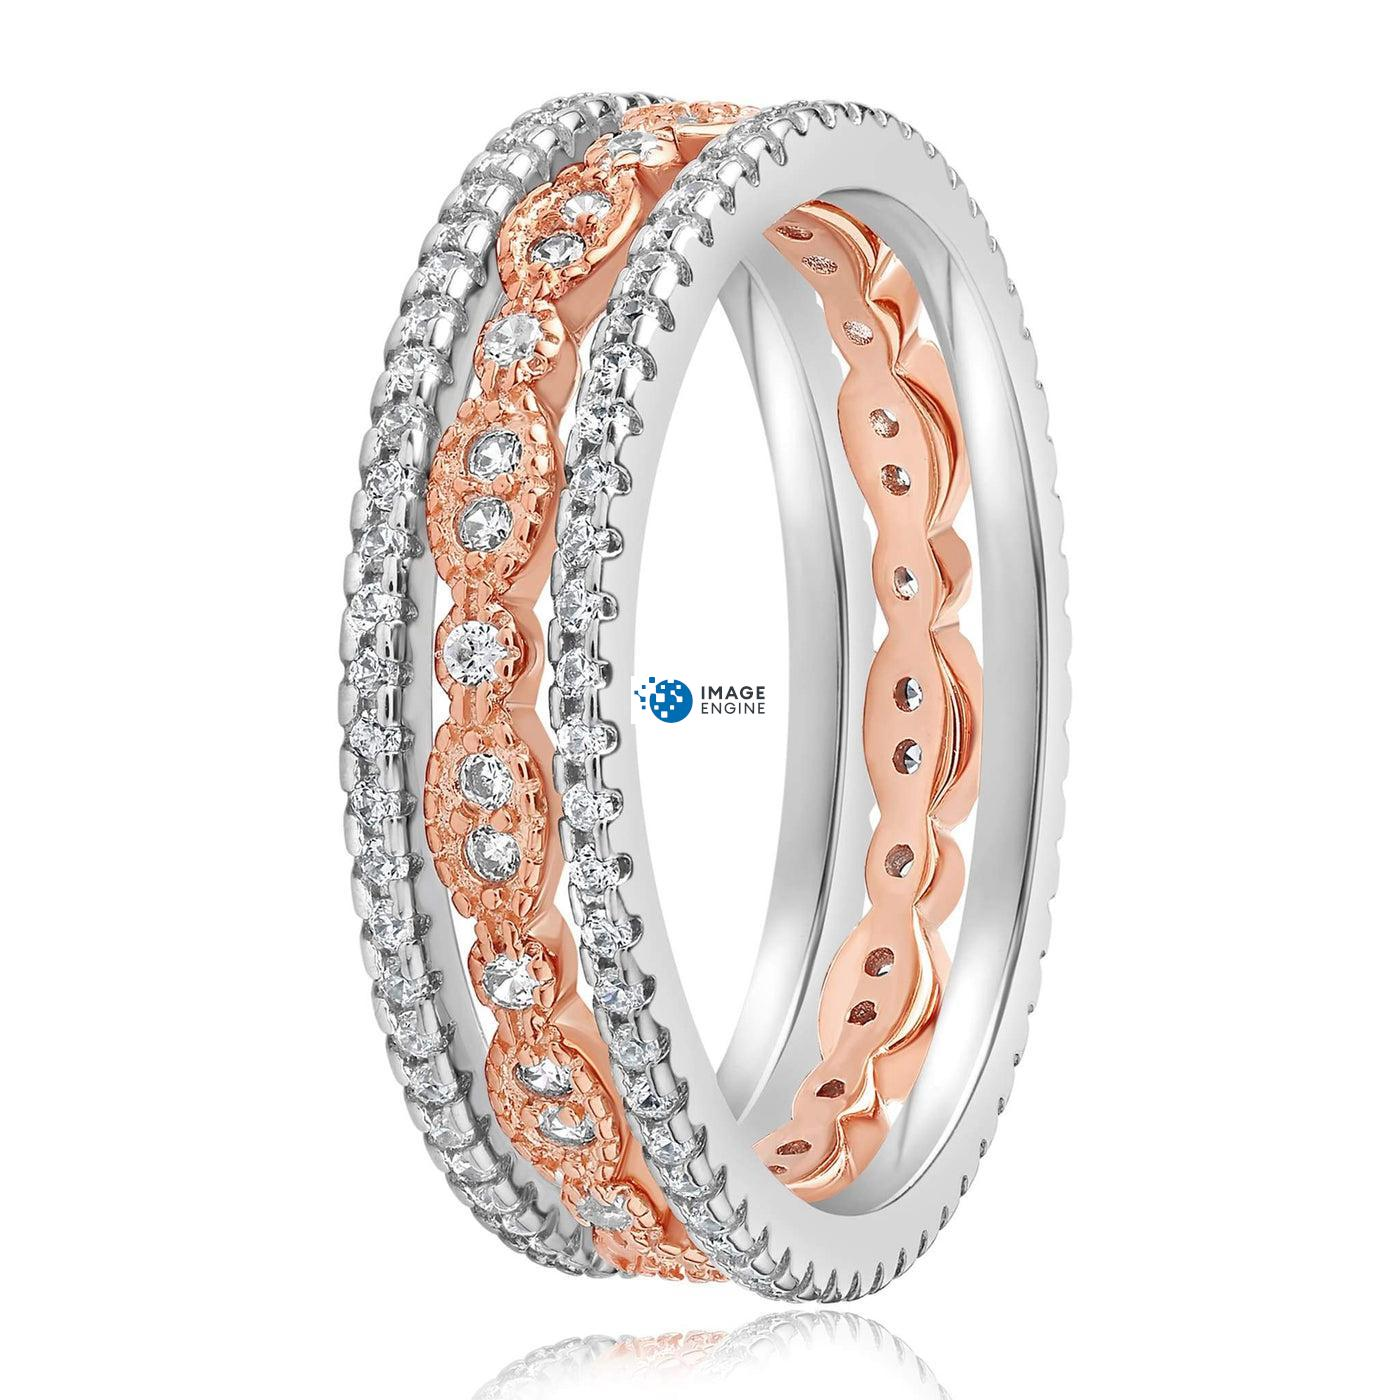 Juliana 3 Ring Set - Side View - 18K Rose Gold Vermeil